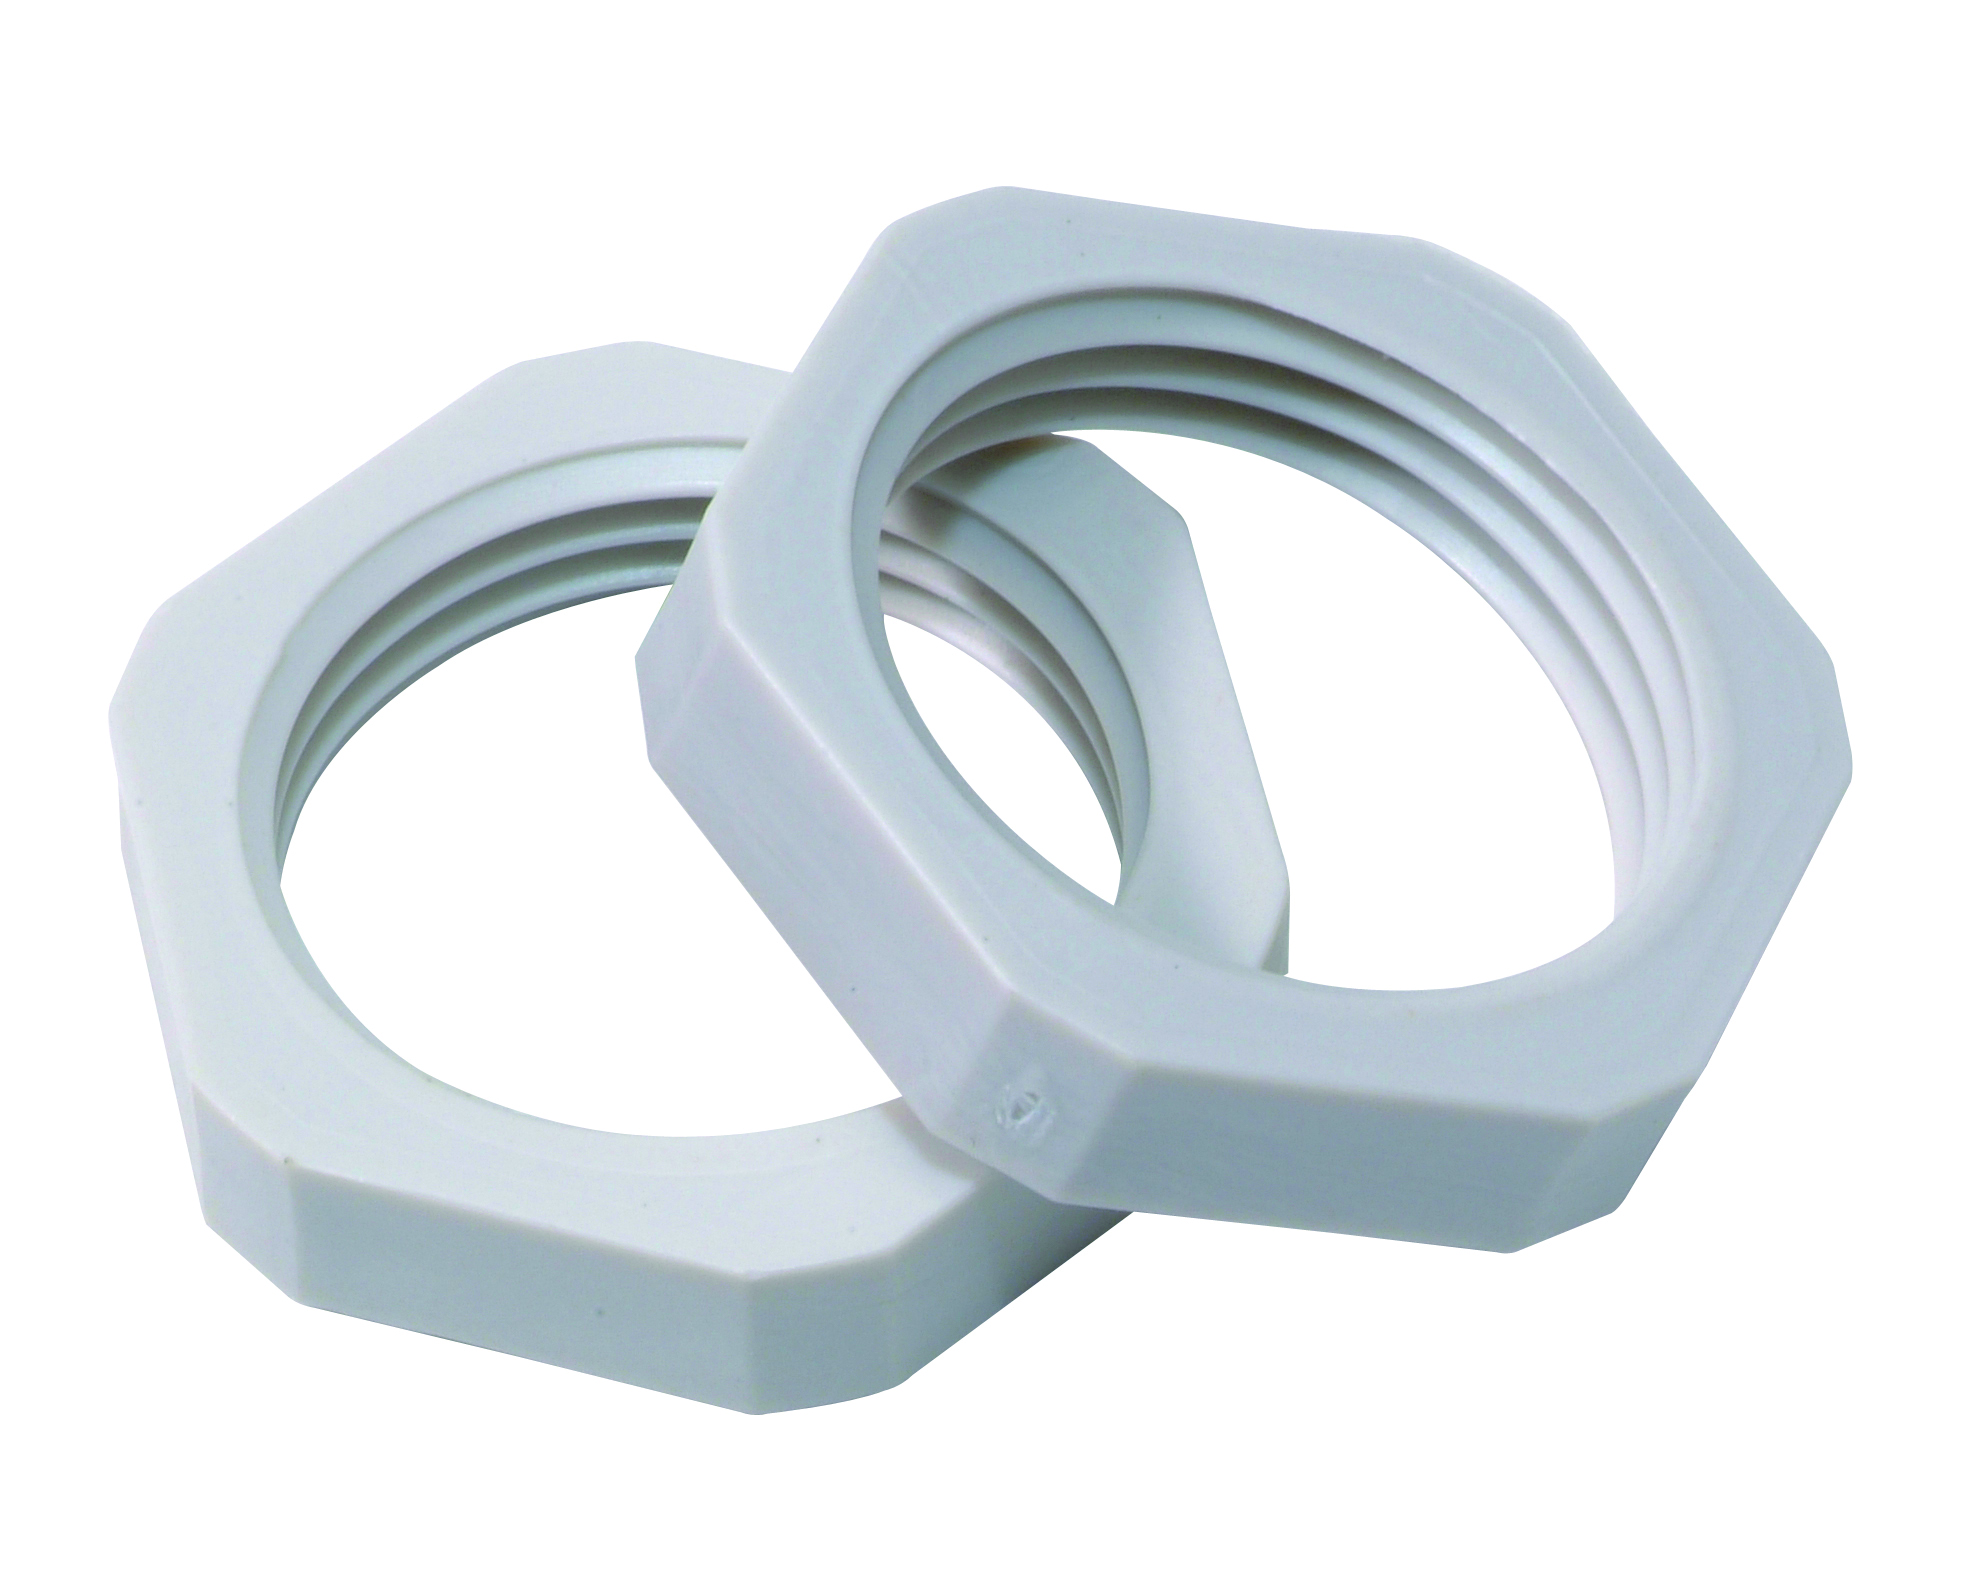 Counter nut polystyrene M20 4 pieces